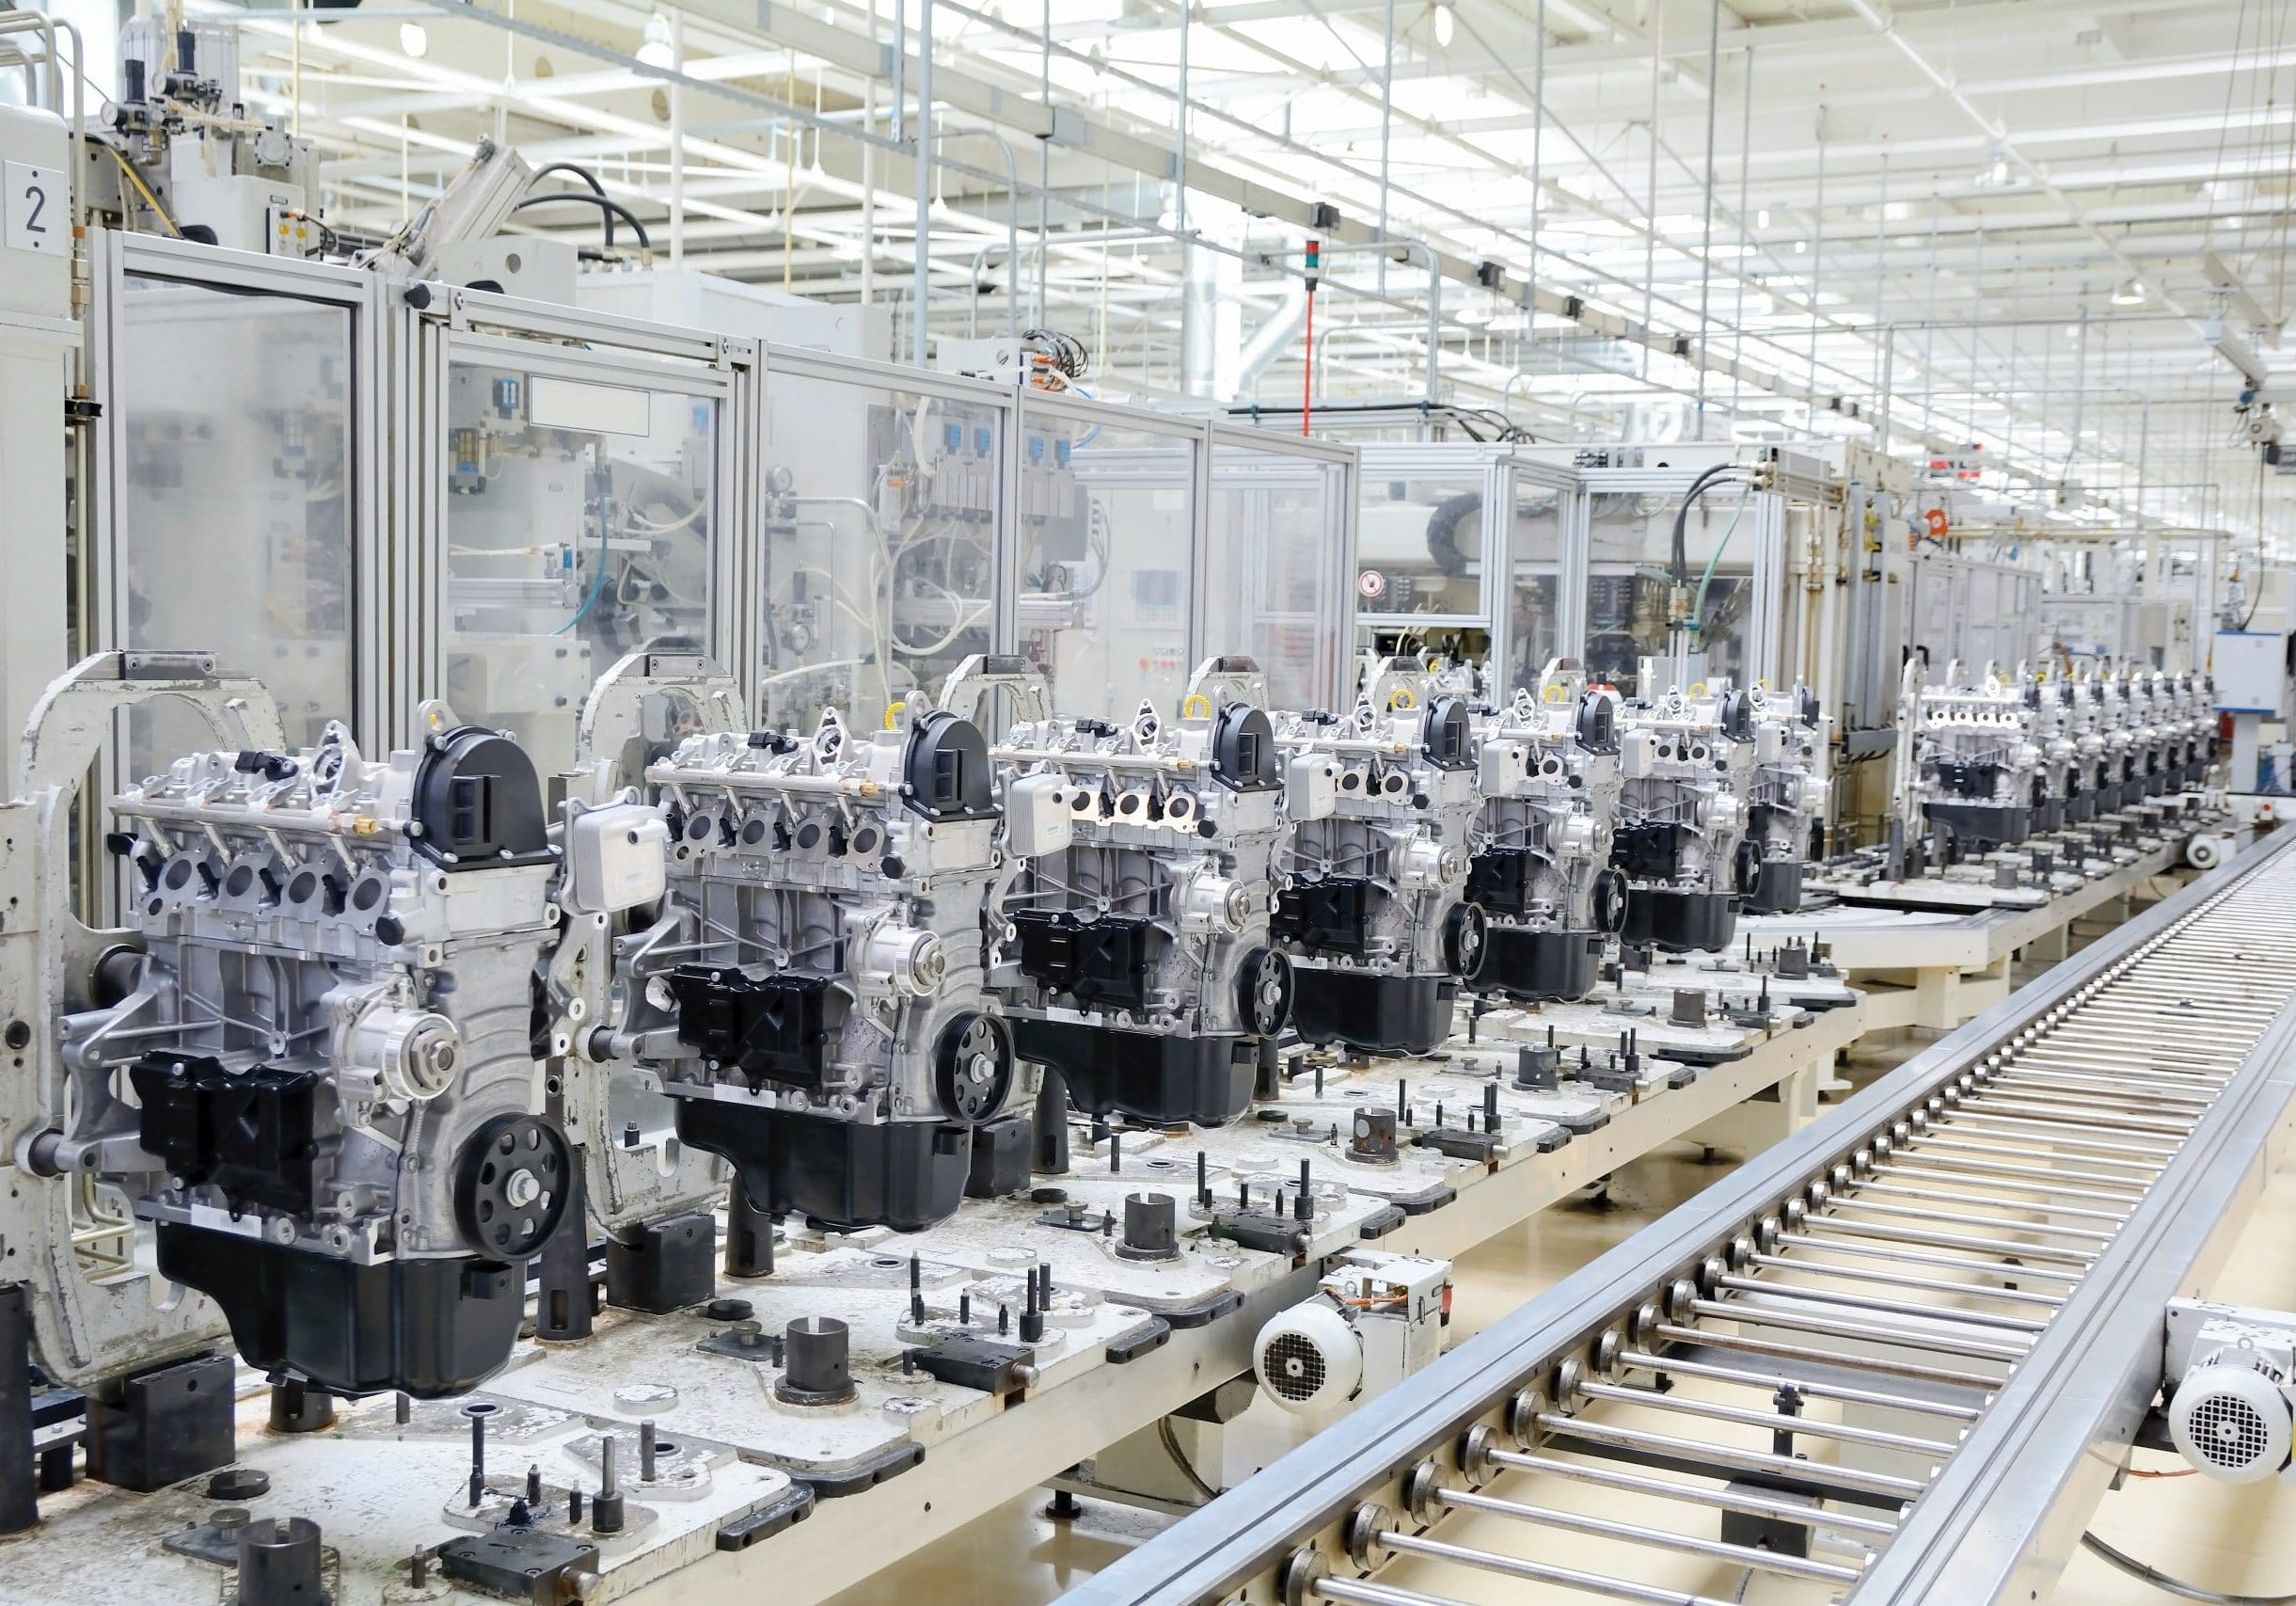 Production line for manufacturing of the engines in the car factory